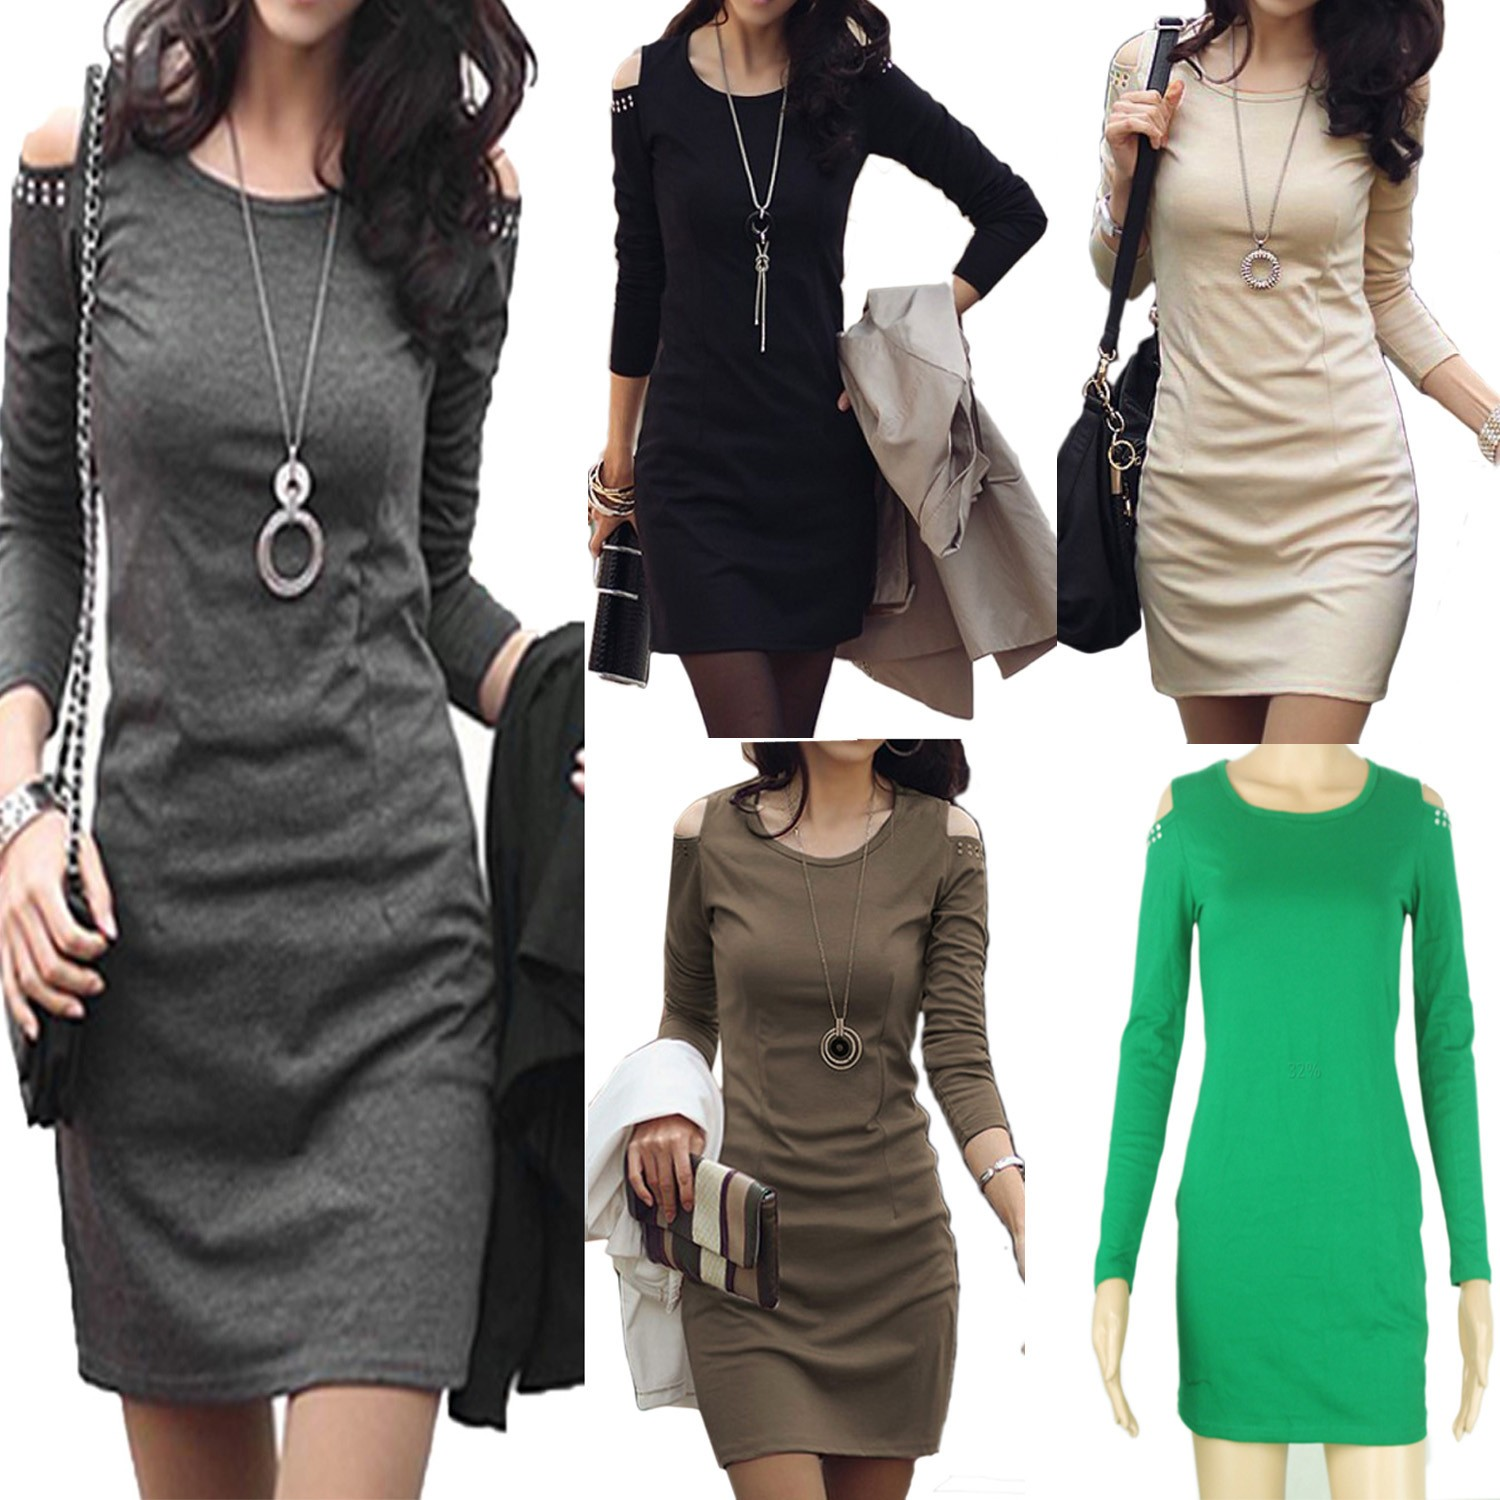 Ladies Winter Party Long Sleeve Beaded Bodycon Mini Dress